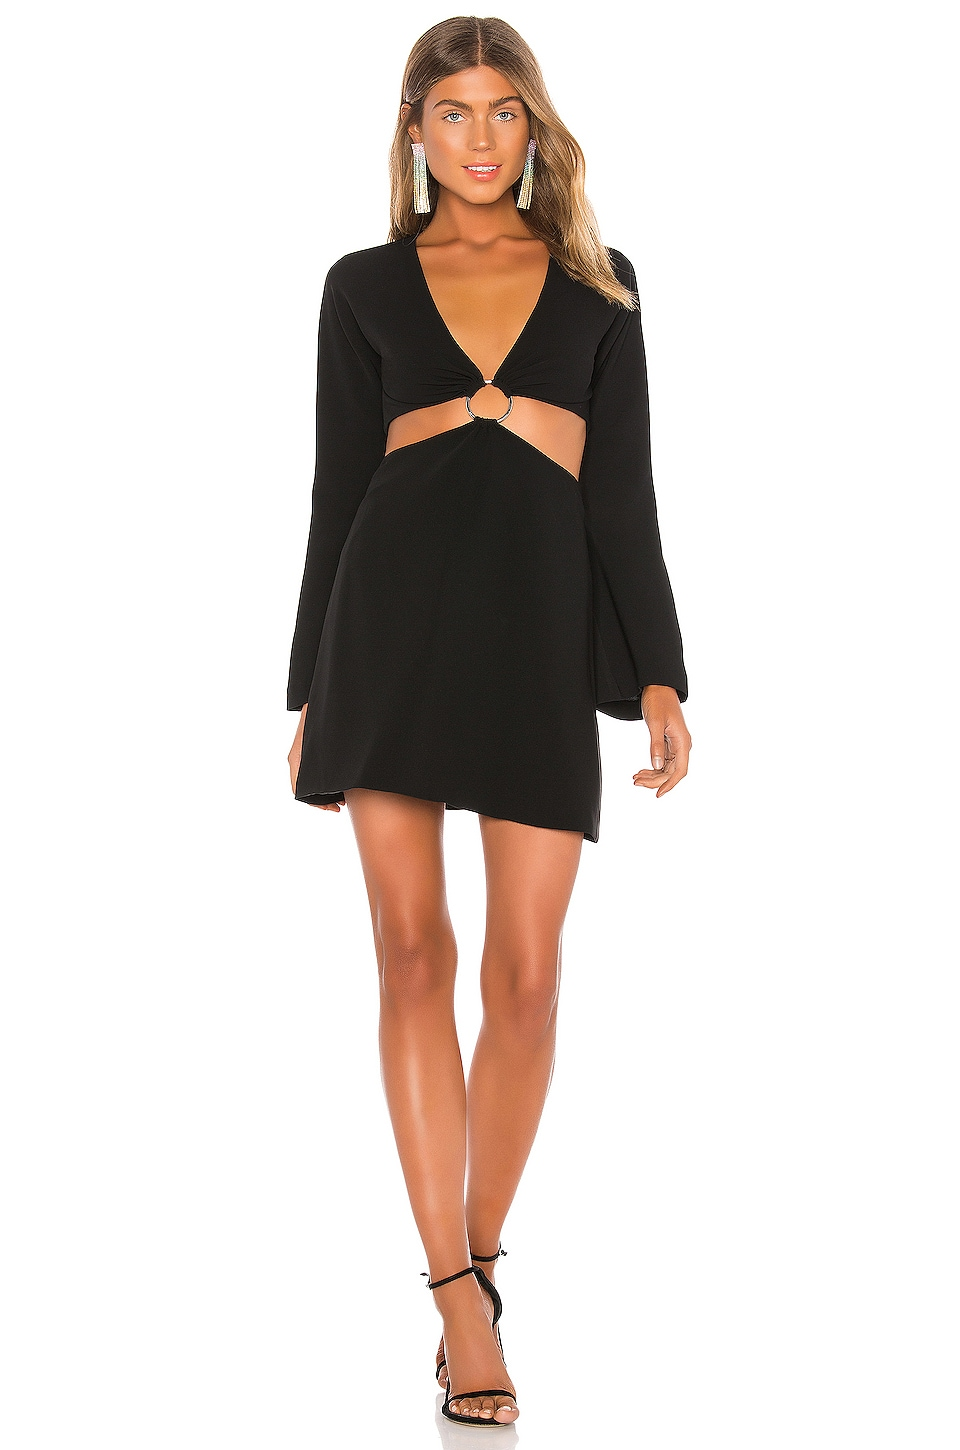 Cinq a Sept Sola Dress in Black